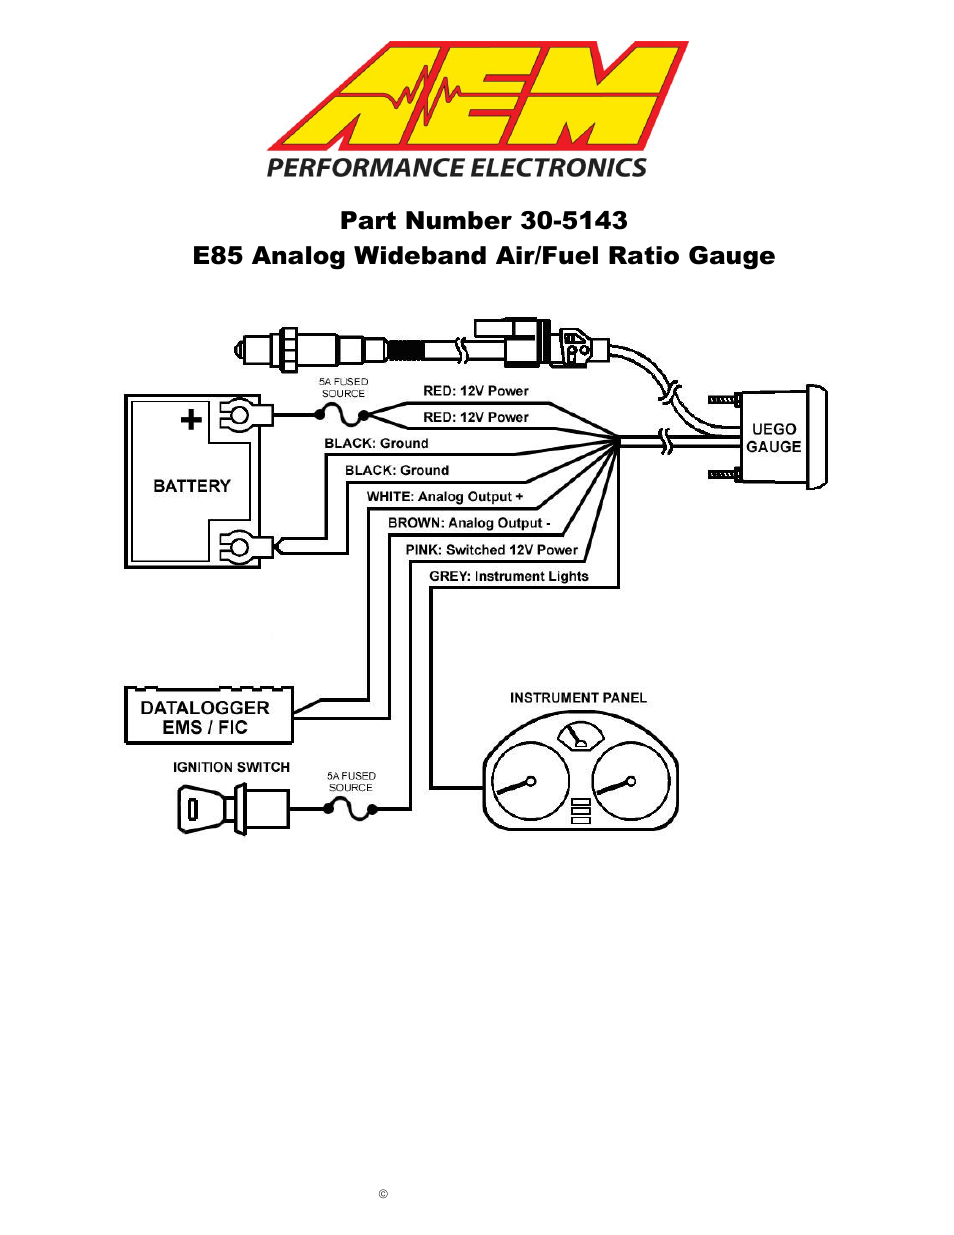 AEM 30-5143 Analog E85 Wideband UEGO Gauge E85 AFR User